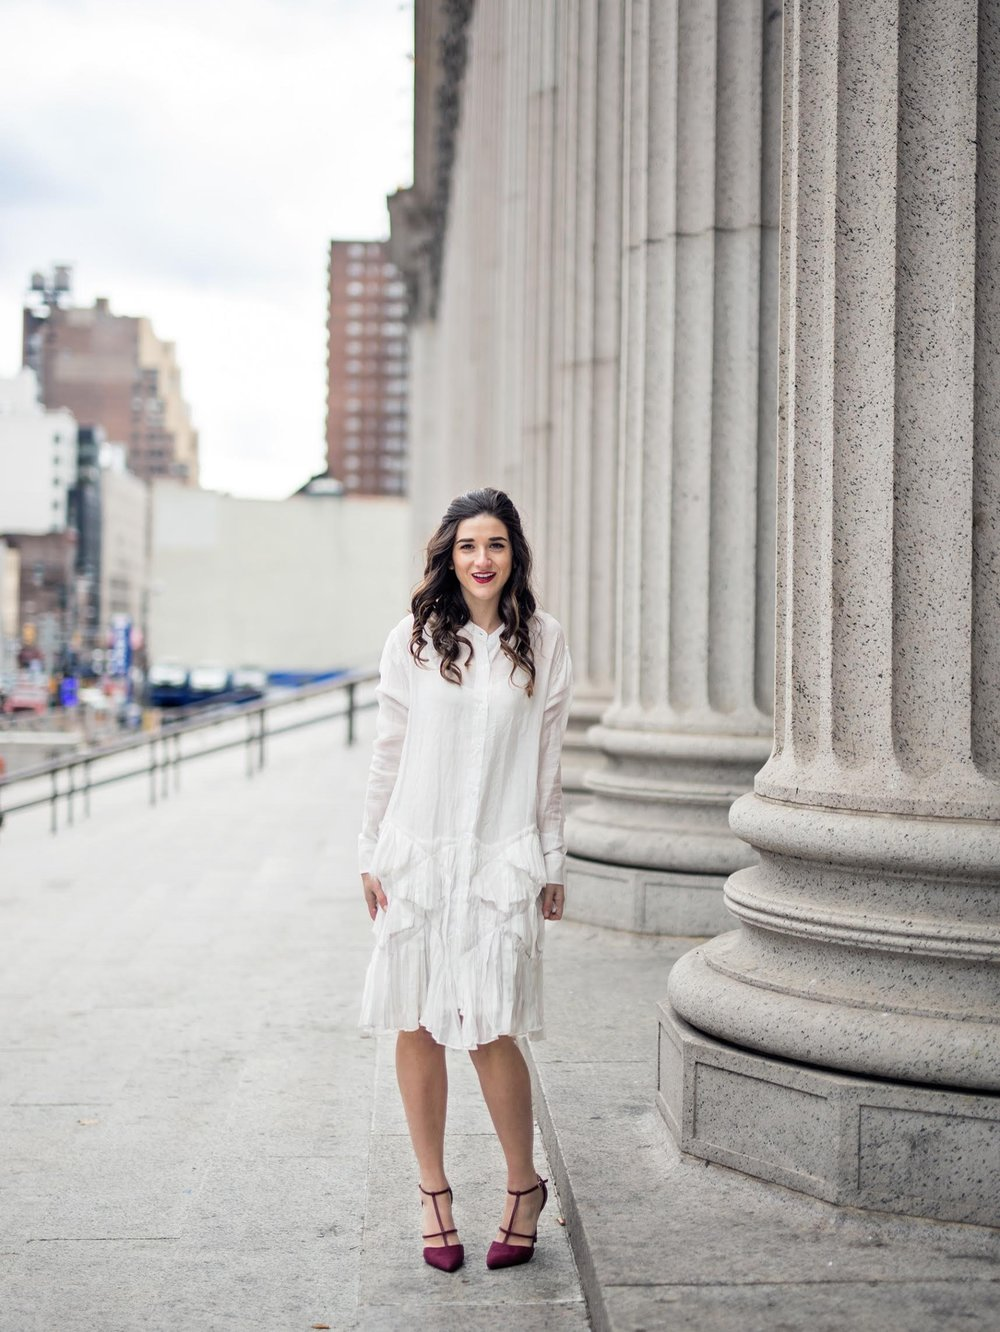 White Ruffle Dress Luvit Louboutins & Love Fashion Blog Esther Santer NYC Street Style Blogger Outfit OOTD Trendy Girly Feminine All Saints Blush Pink Leather Jacket Burgundy Heels Fall Look Inspo Wear Online Shopping App Girl Hair Women Beauty Shop.jpg